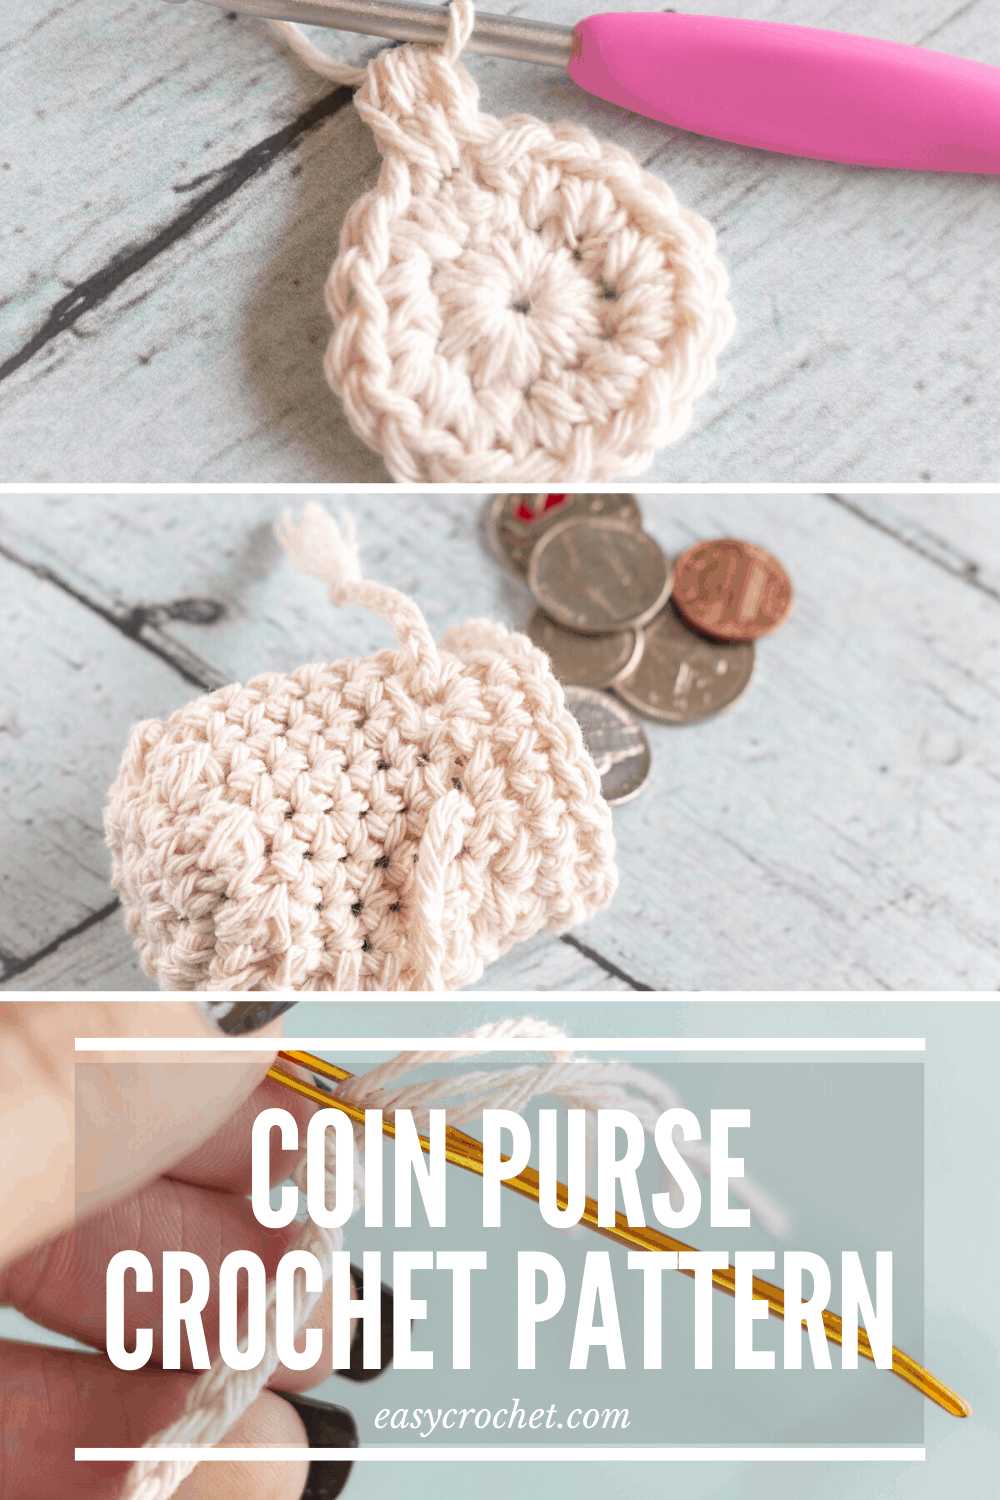 Crochet Coin Purse Pattern - Learn to crochet this coin purse with our free crochet pattern. via @easycrochetcom